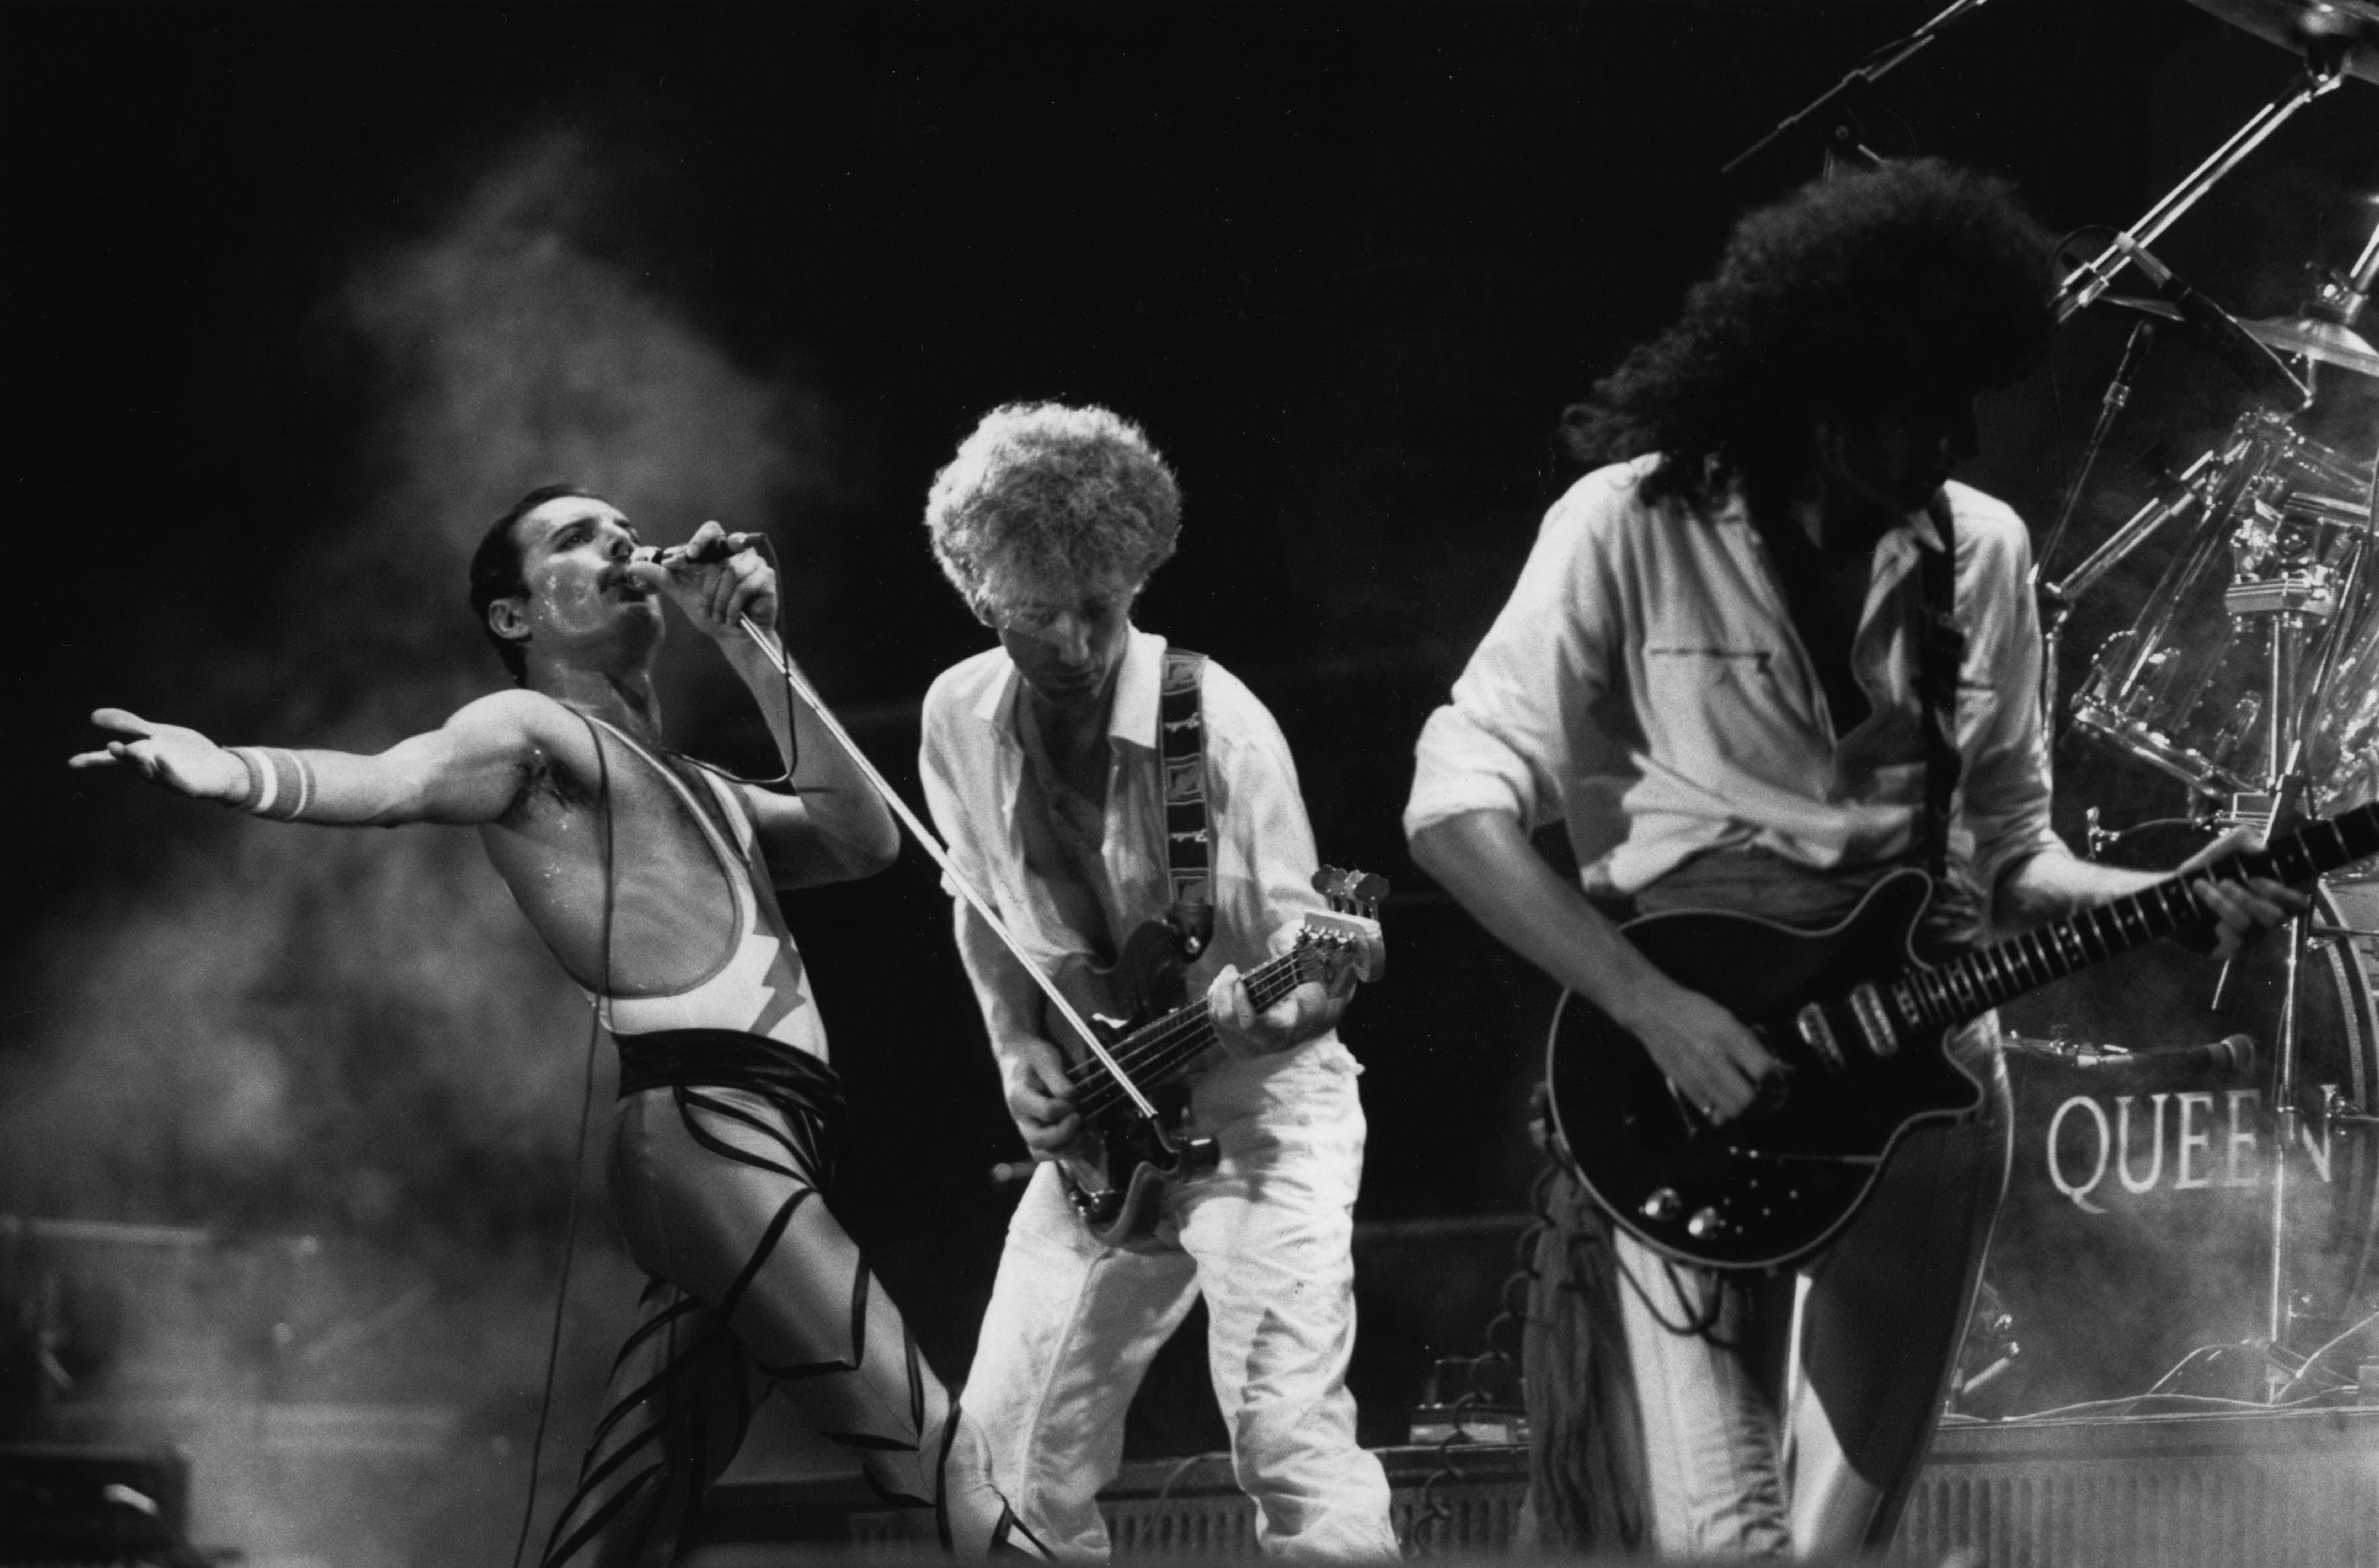 AOTM: Queen Releasing a Set of 25 Albums — in Italy